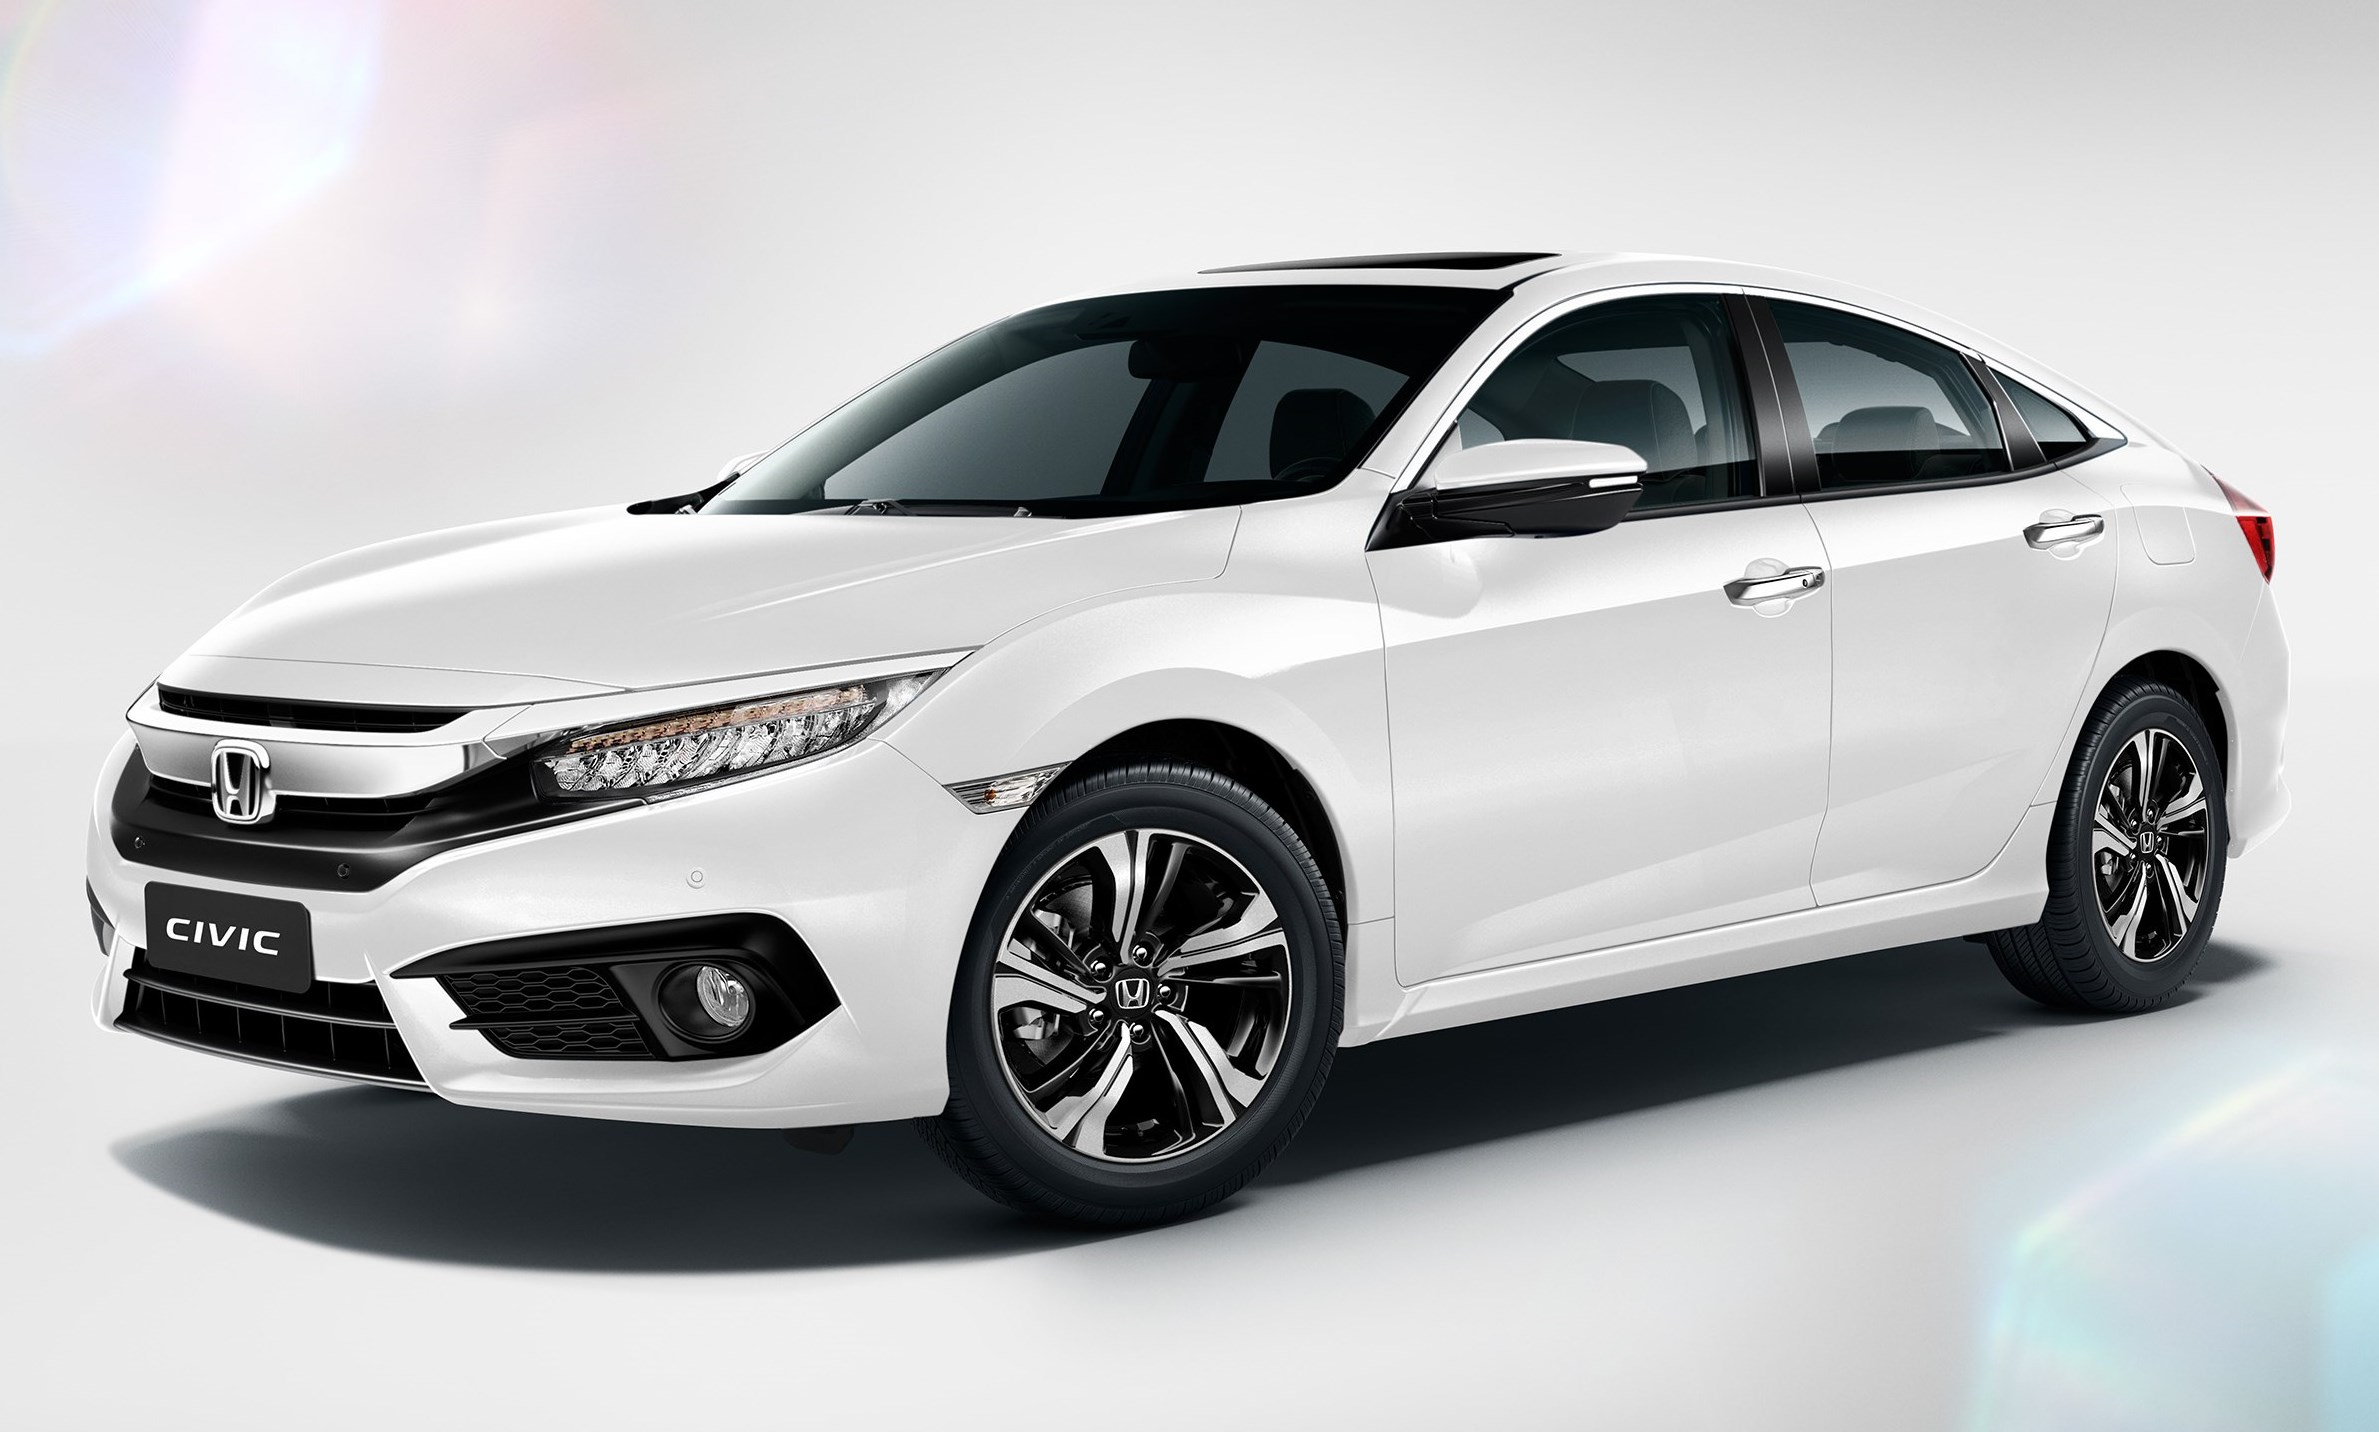 honda argentina lanz el nuevo civic desde 469 000 automotiva. Black Bedroom Furniture Sets. Home Design Ideas